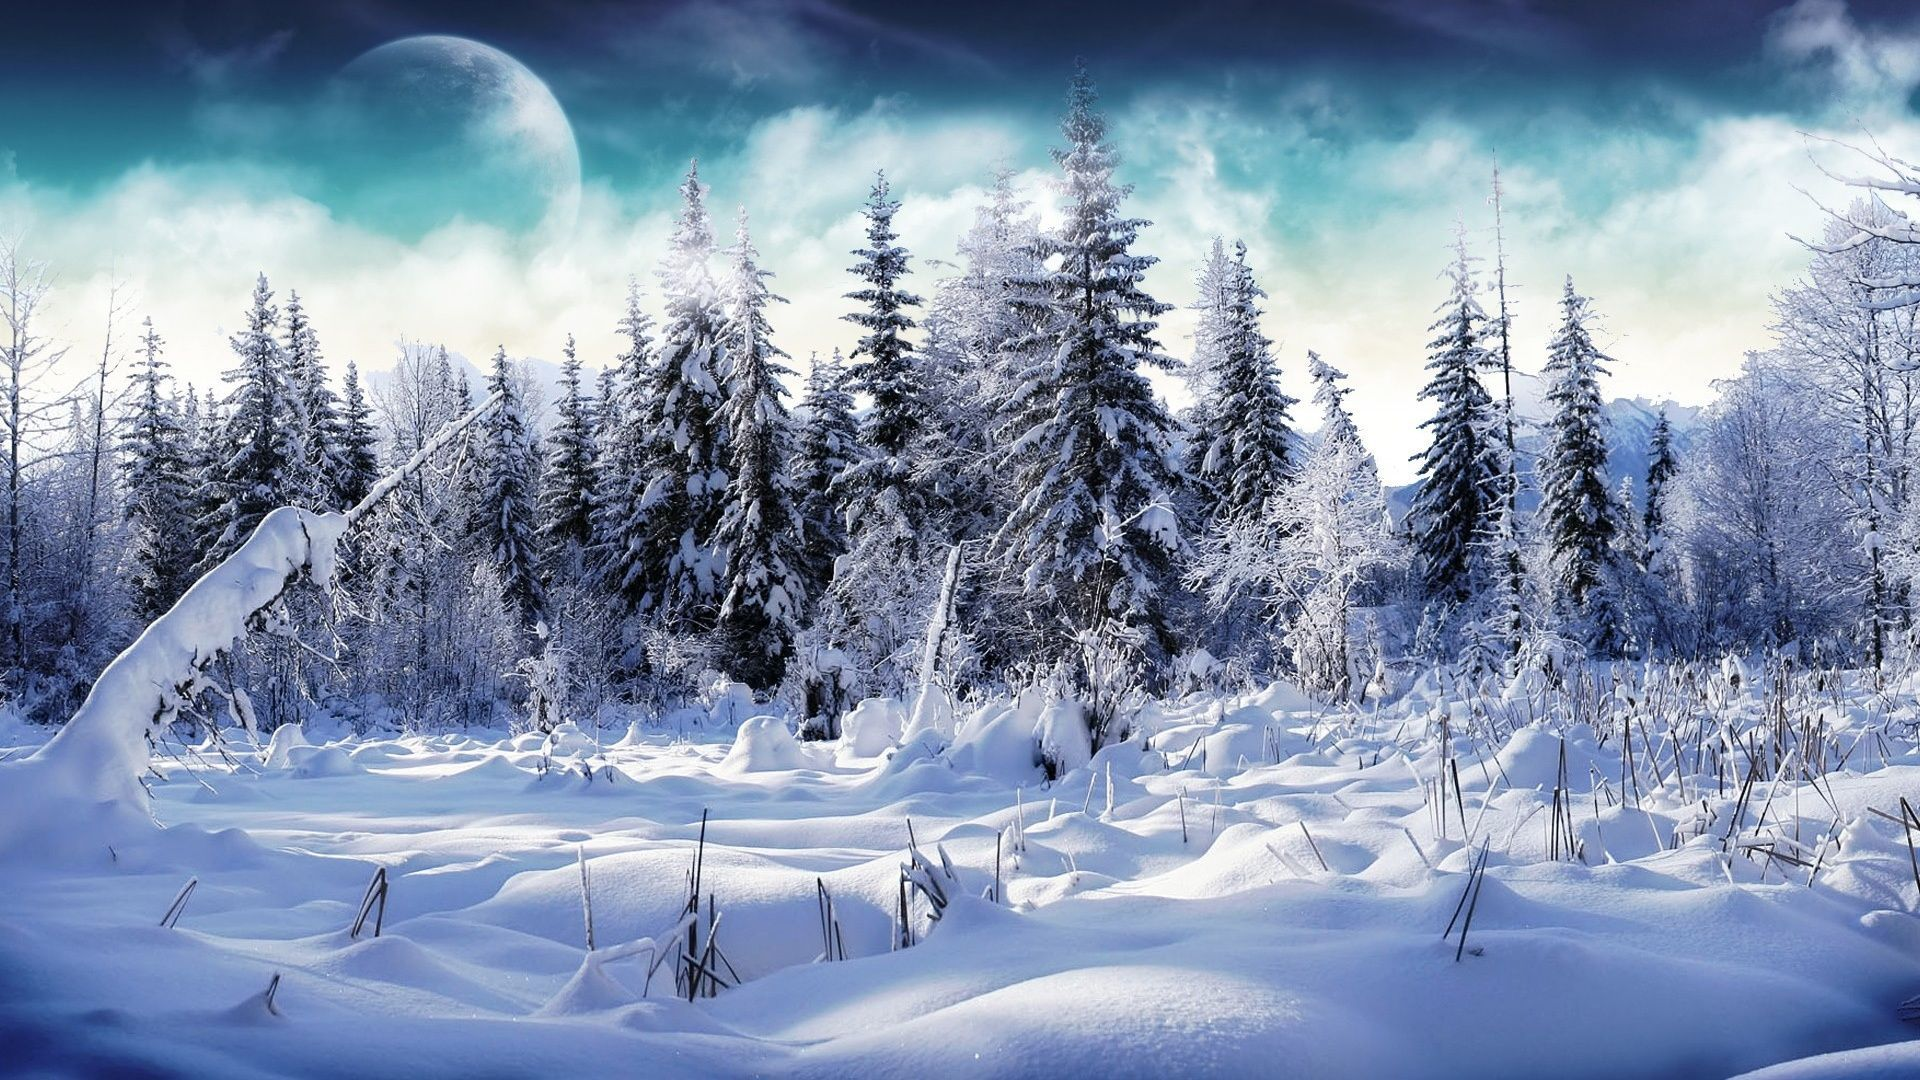 1080p Snow Wallpapers Top Free 1080p Snow Backgrounds